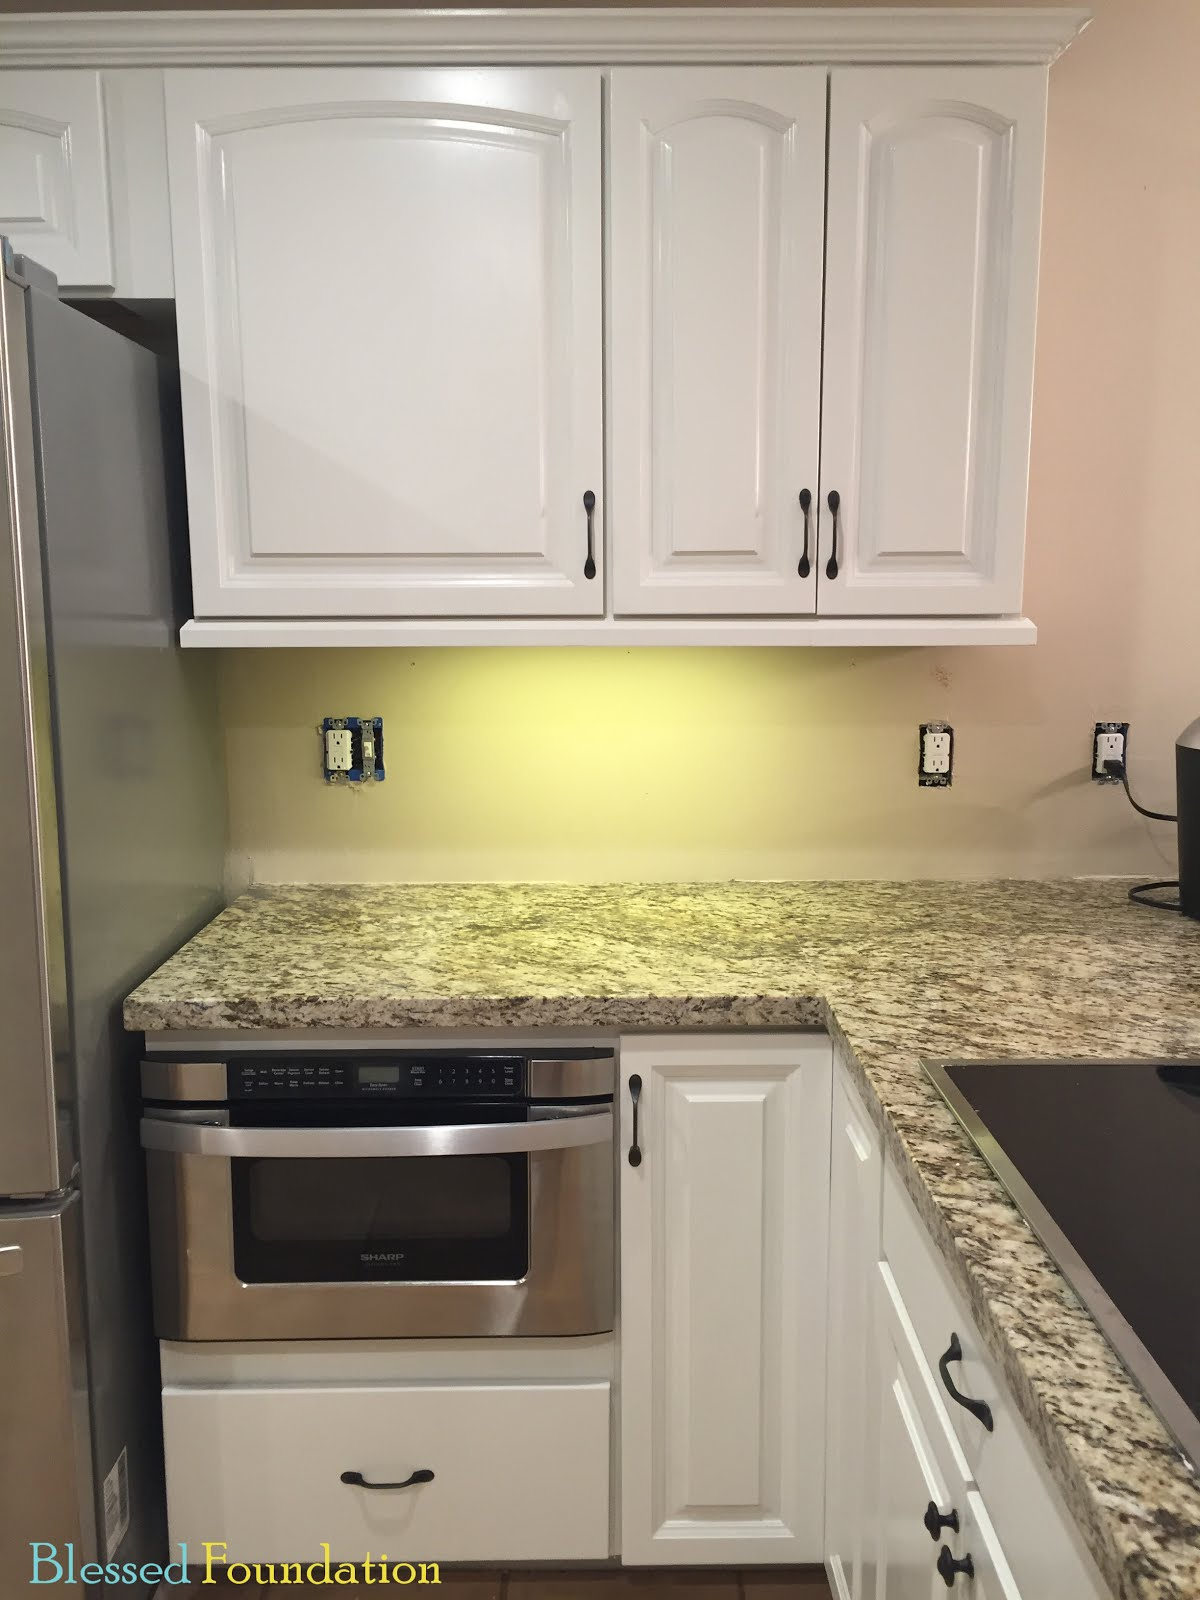 Blessed Foundation Post 40 Cabinet Undermount Lighting